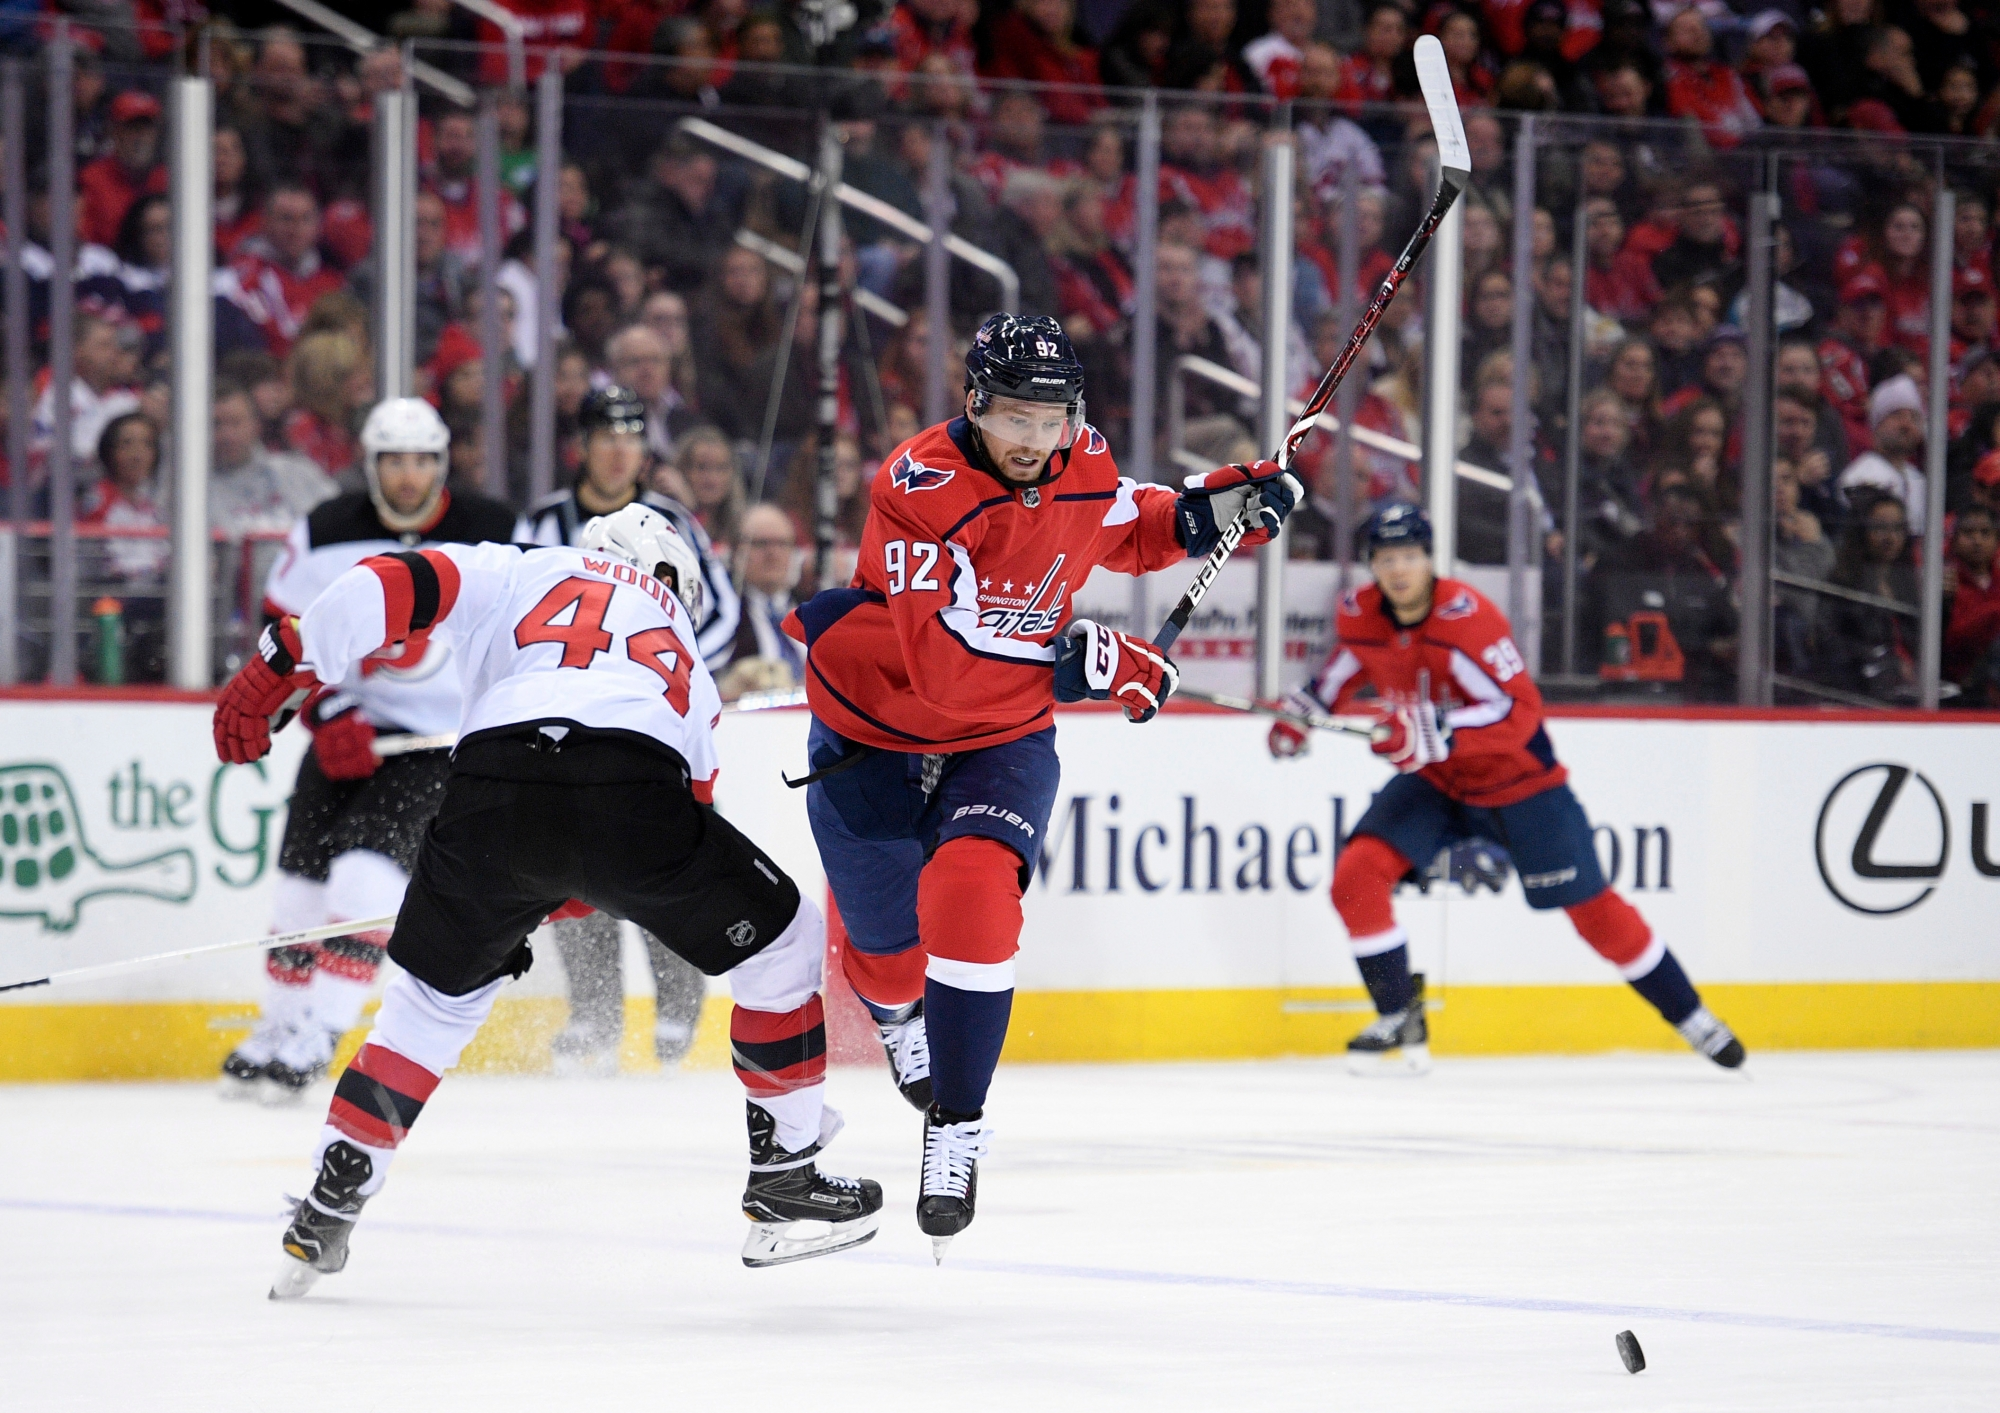 Preview  Caps look to extend winning streak in game against New Jersey  Devils  c2813fecdd6